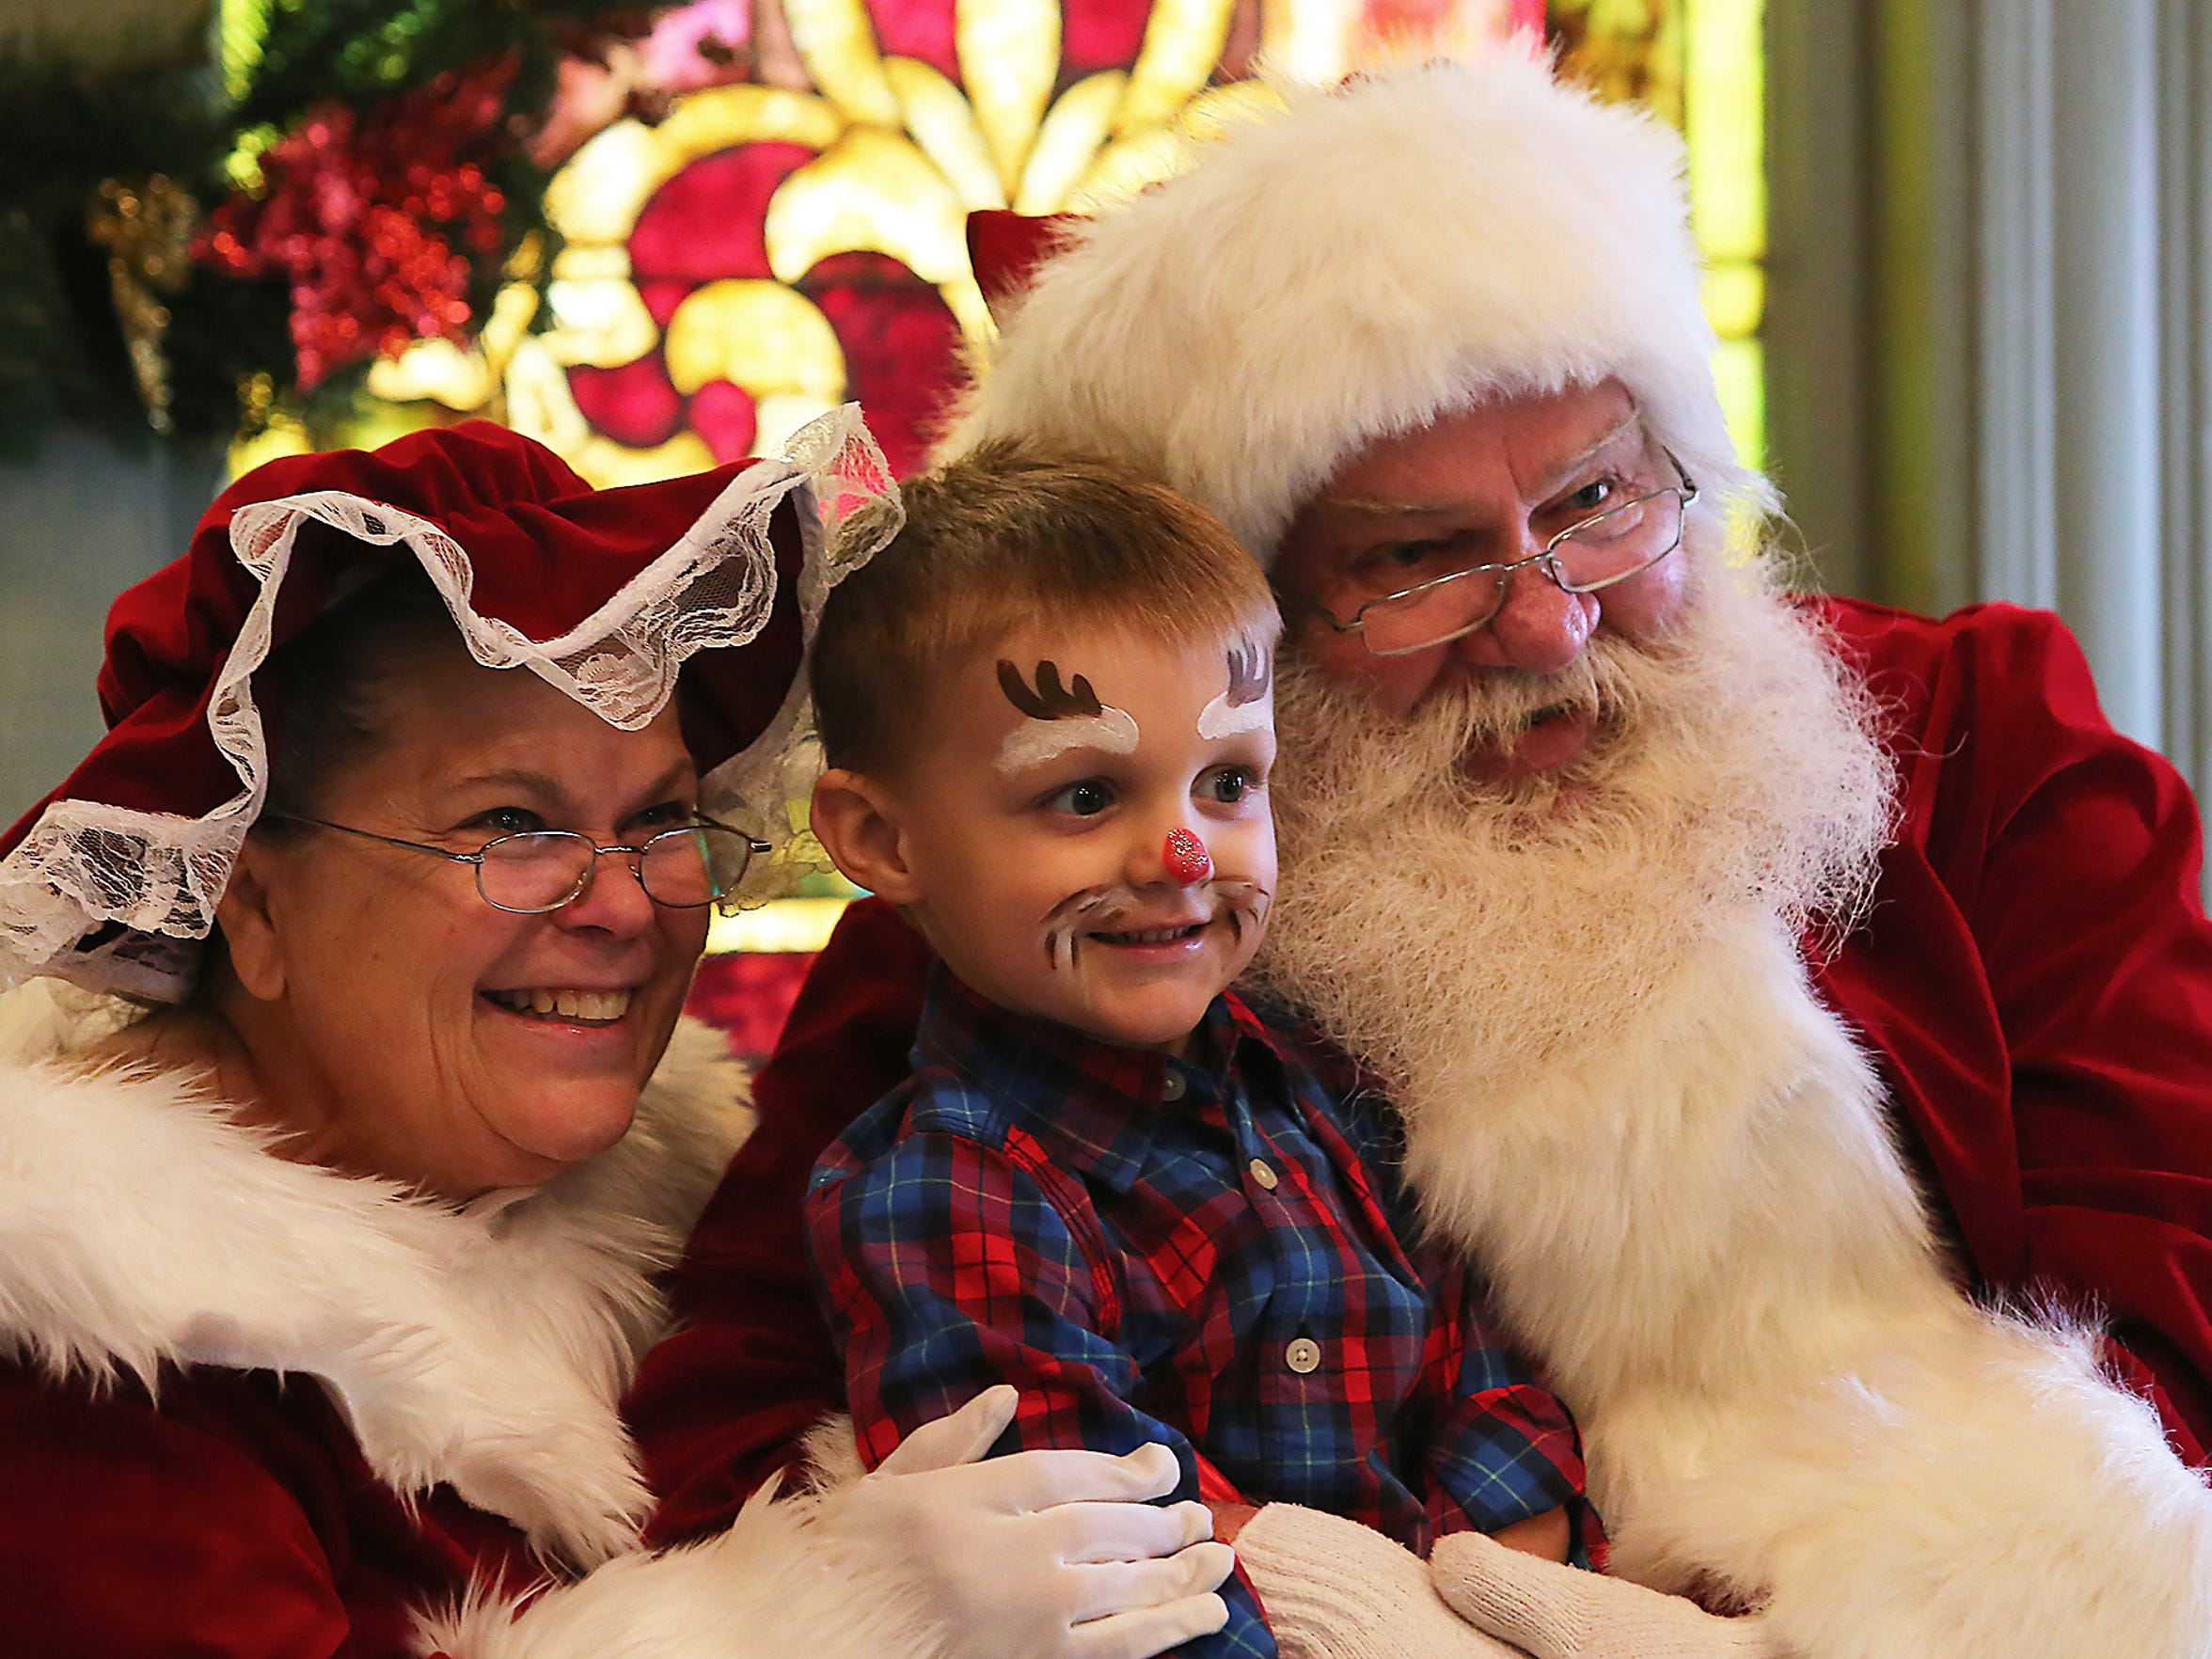 DEC. 3 -- Christmas at Cannonsburgh, 312 S. Front St. in Murfreesboro, is set for 10 a.m. to 3 p.m. Dec. 3. There will be pictures with Santa in the chapel, hot apple cider, a hayride, live music from Emilie Burke and craft vendors, just to name a few holiday activities. Admission is free, although there is a fee for photos with Santa. For details, call 615-890-0355 or email hodges@murfreesborotn.gov.